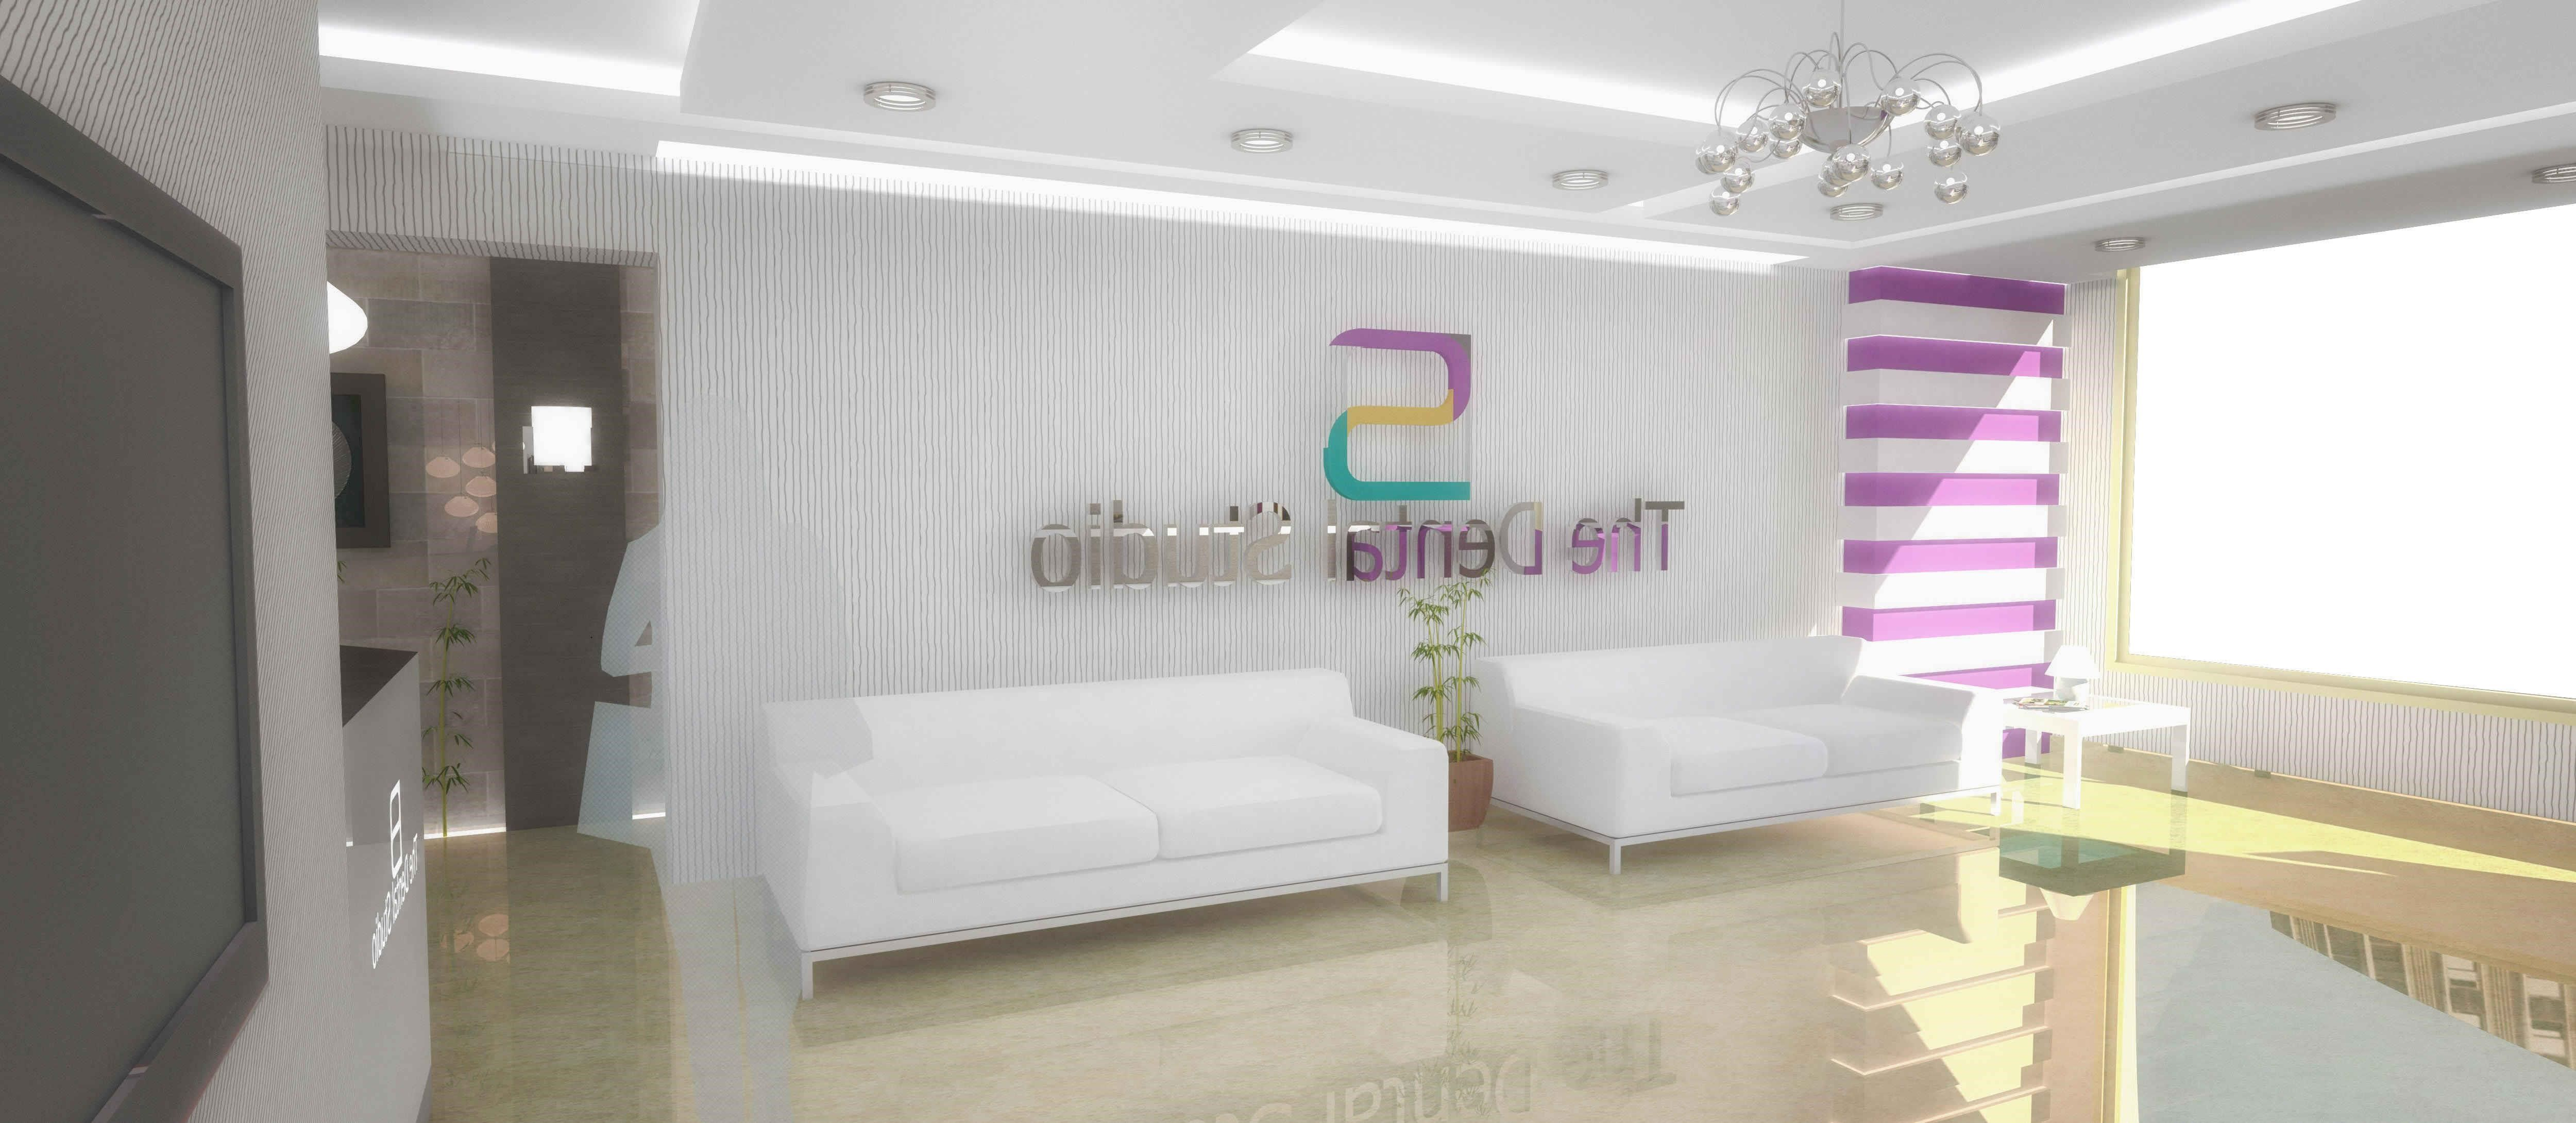 Dental Office Reception   Google Search